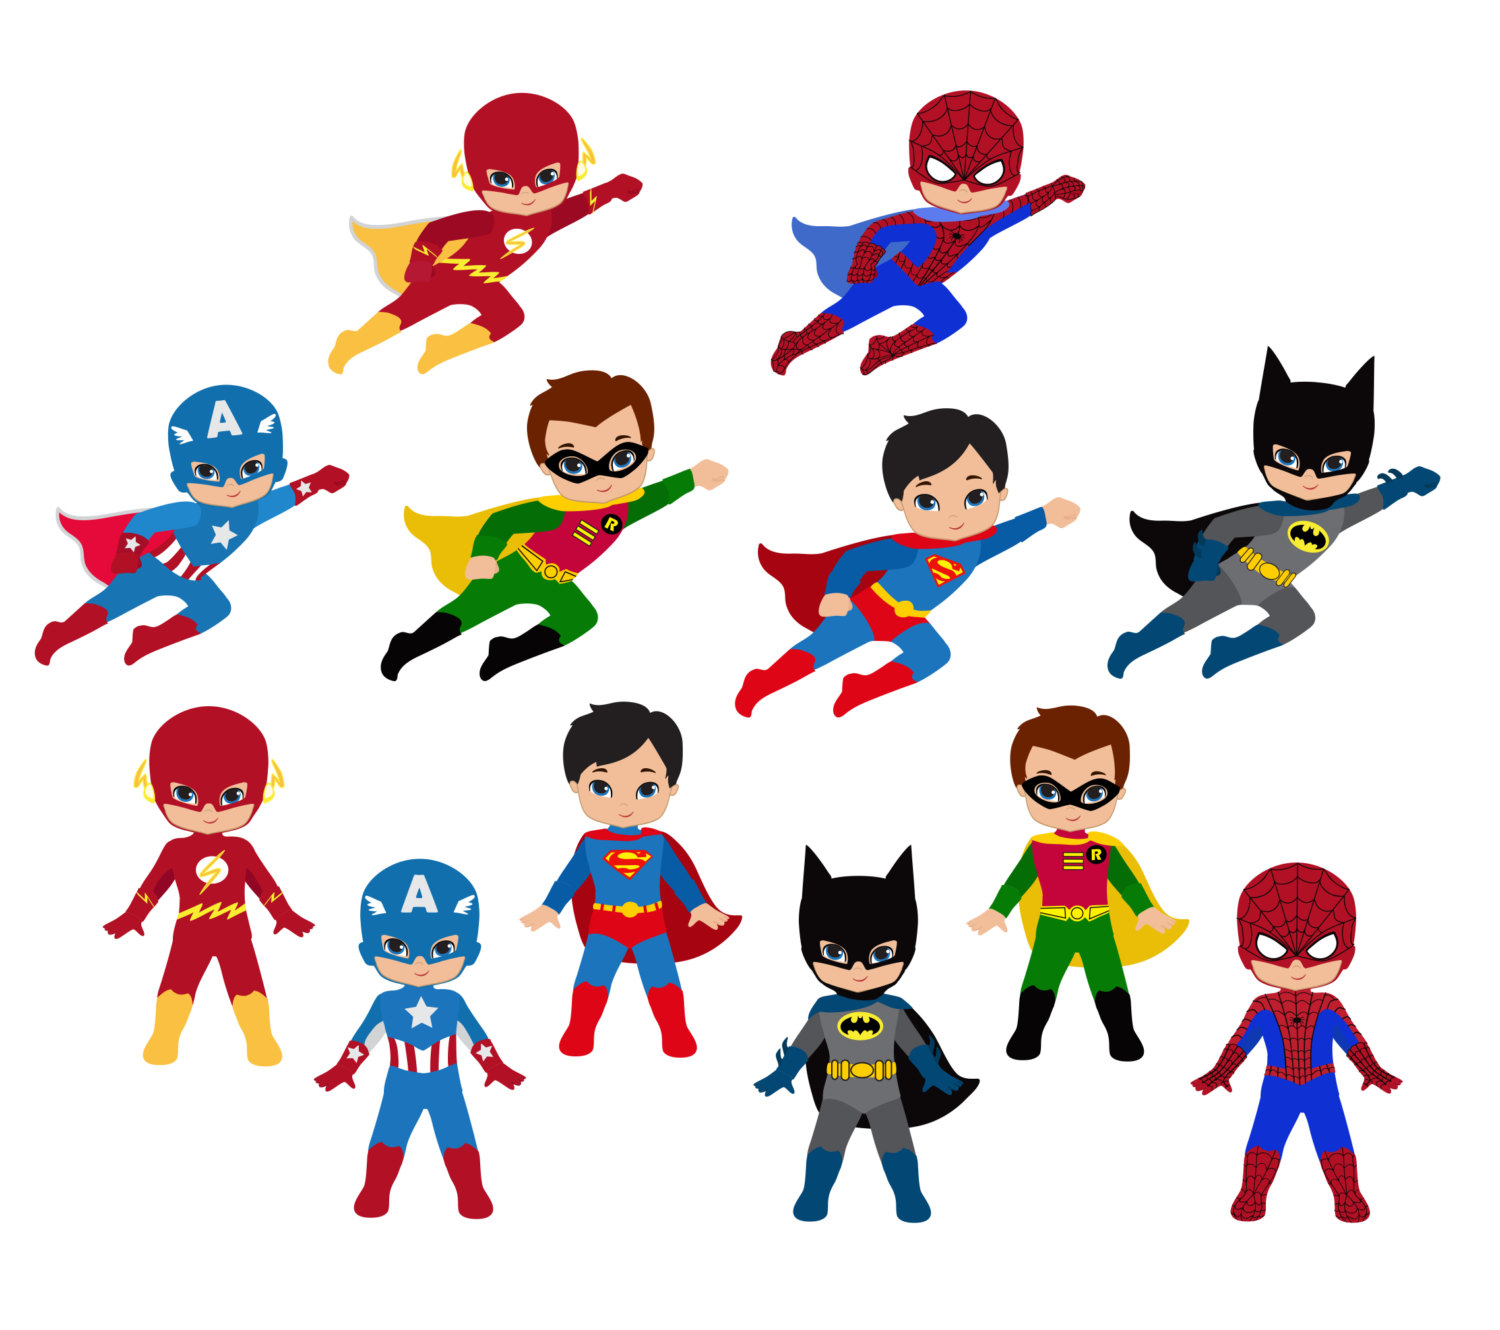 free superhero clipart | Fonts/Clipart freebies | Pinterest | Clip art, Boys and Search